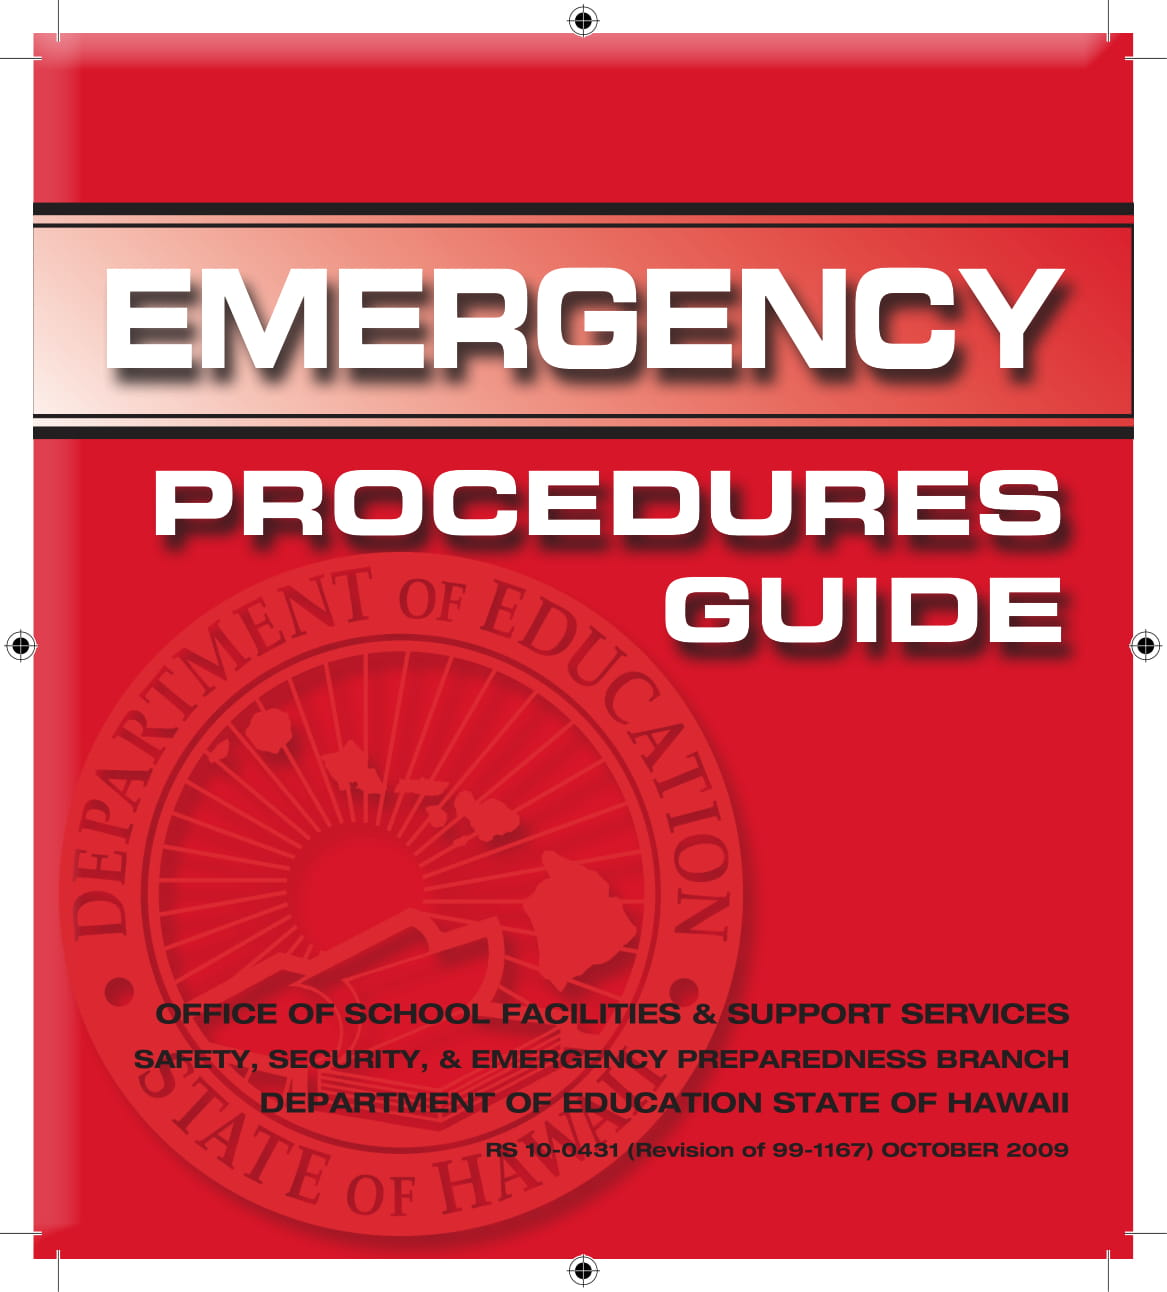 HIDOE Emergency Procedures Guide